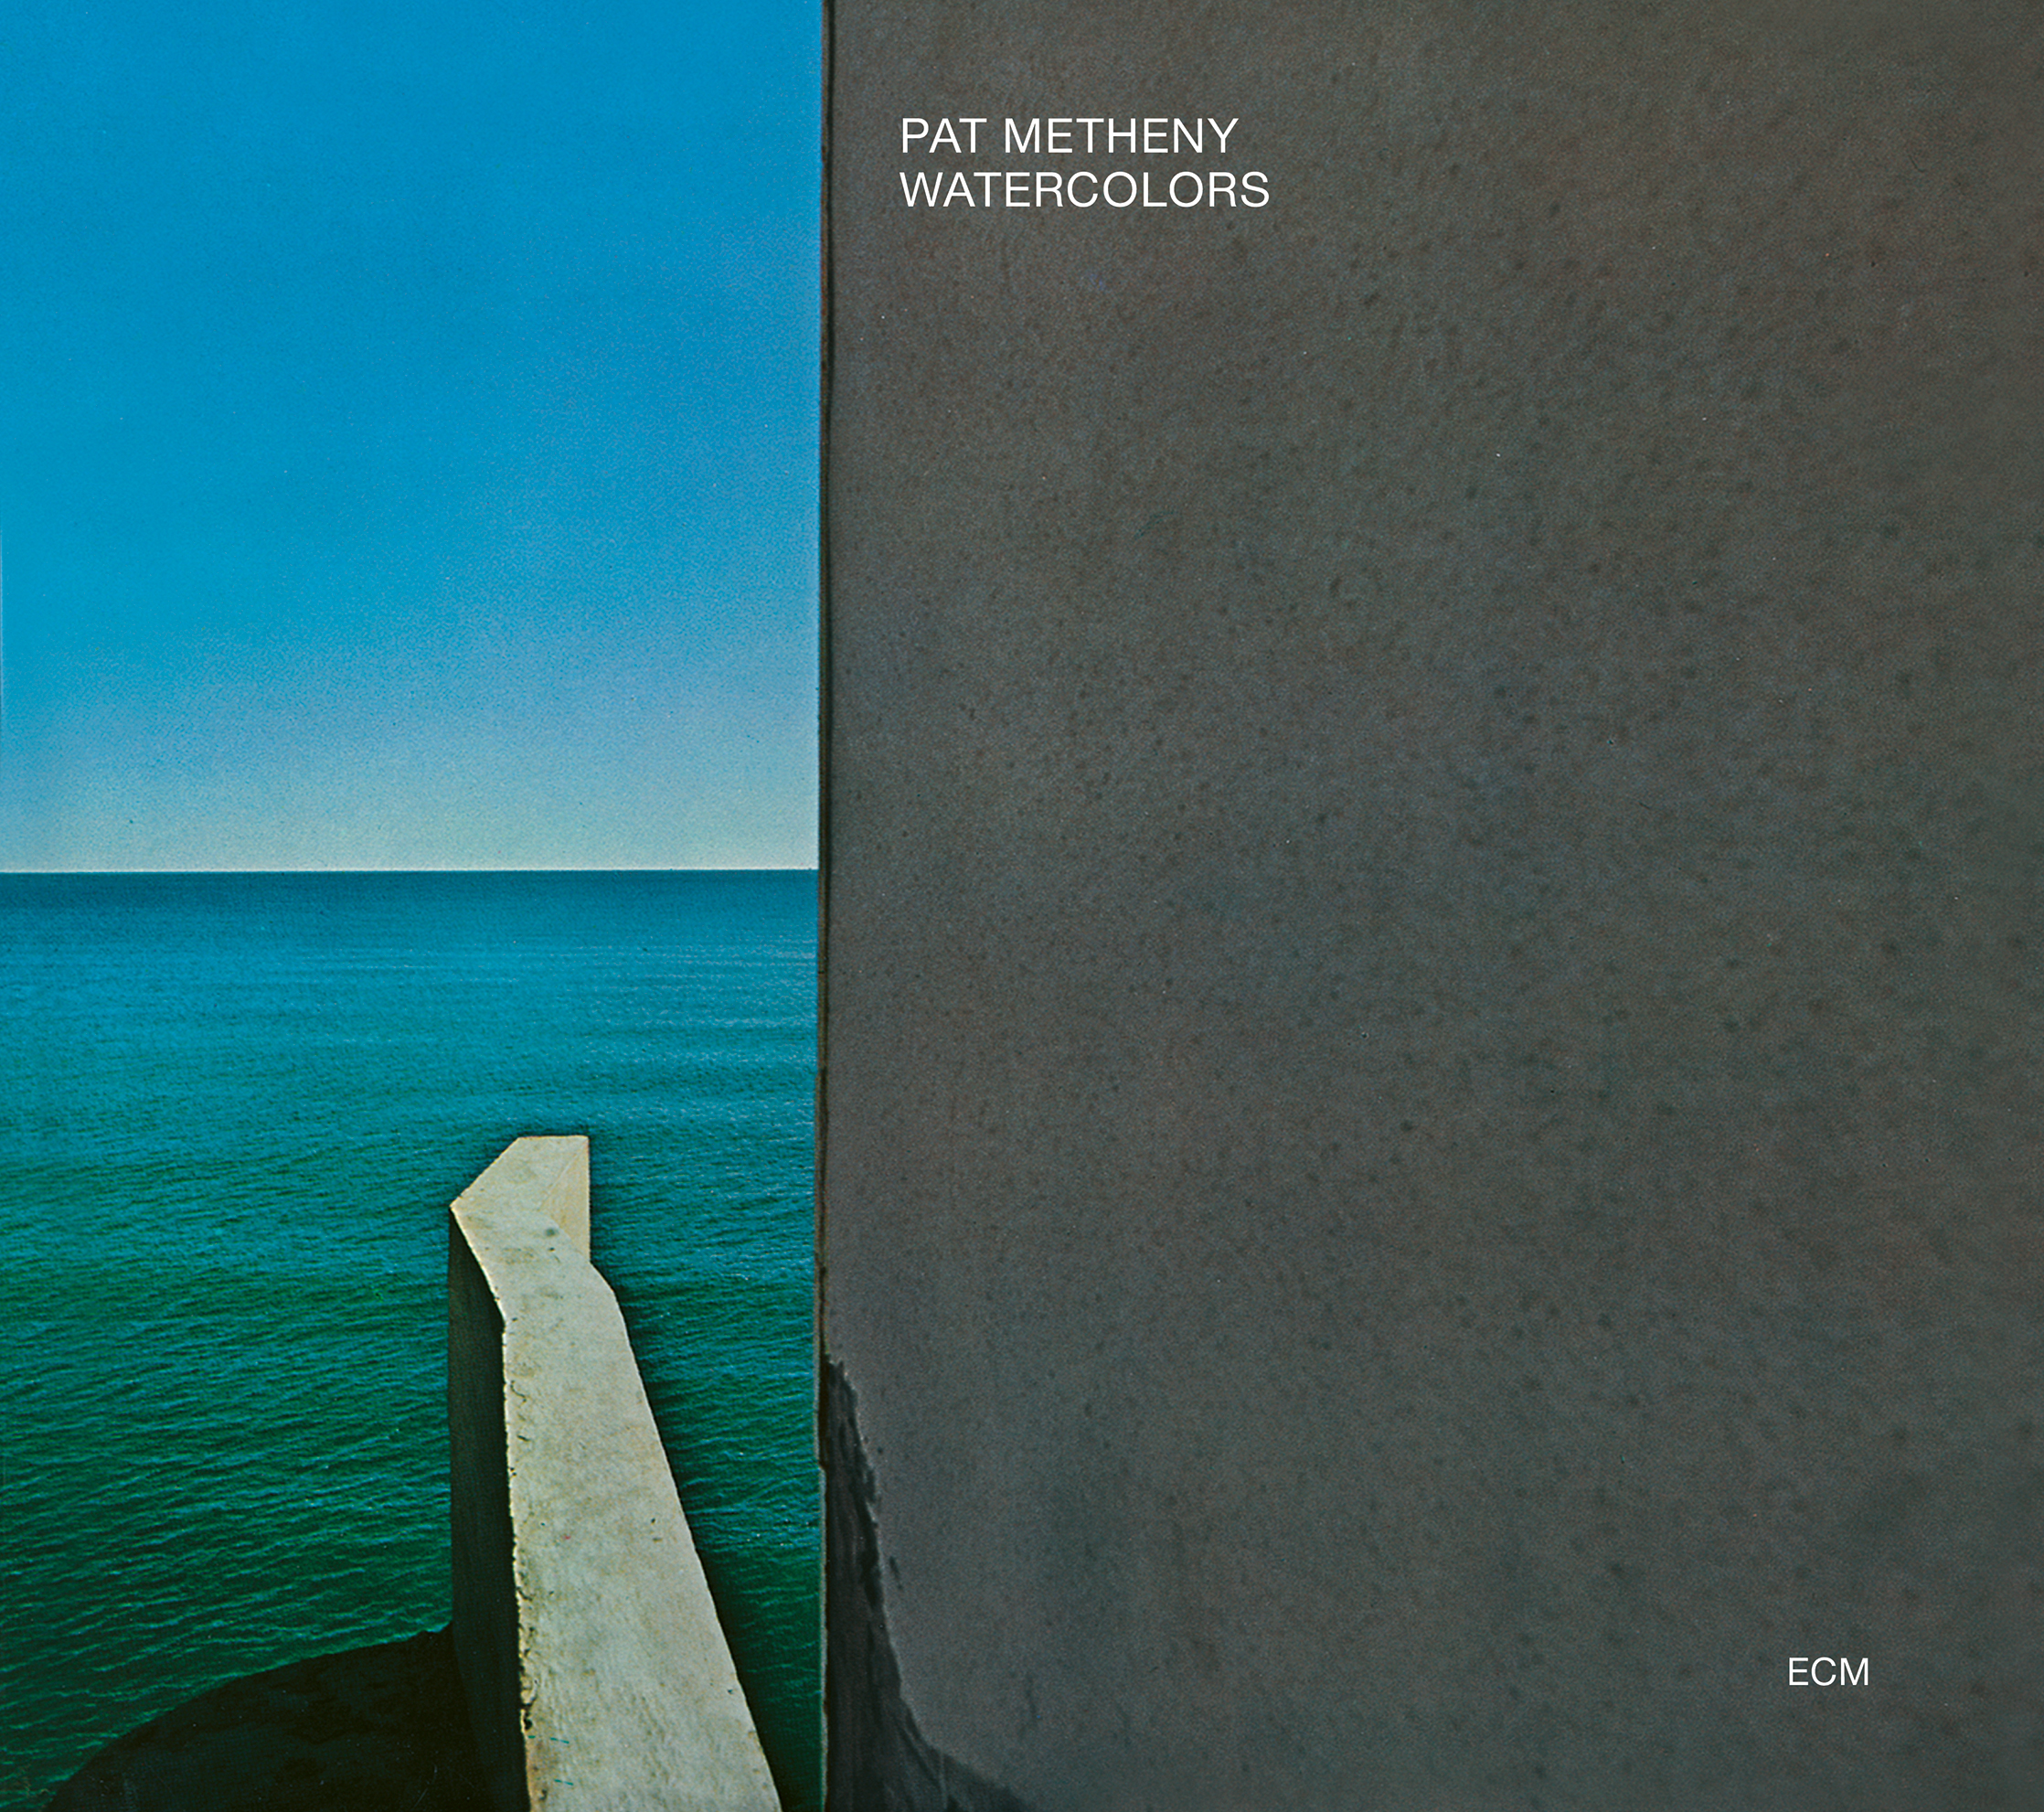 Pat Metheny: Watercolors (ECM 1097) – Between Sound and Space: ECM Records  and Beyond